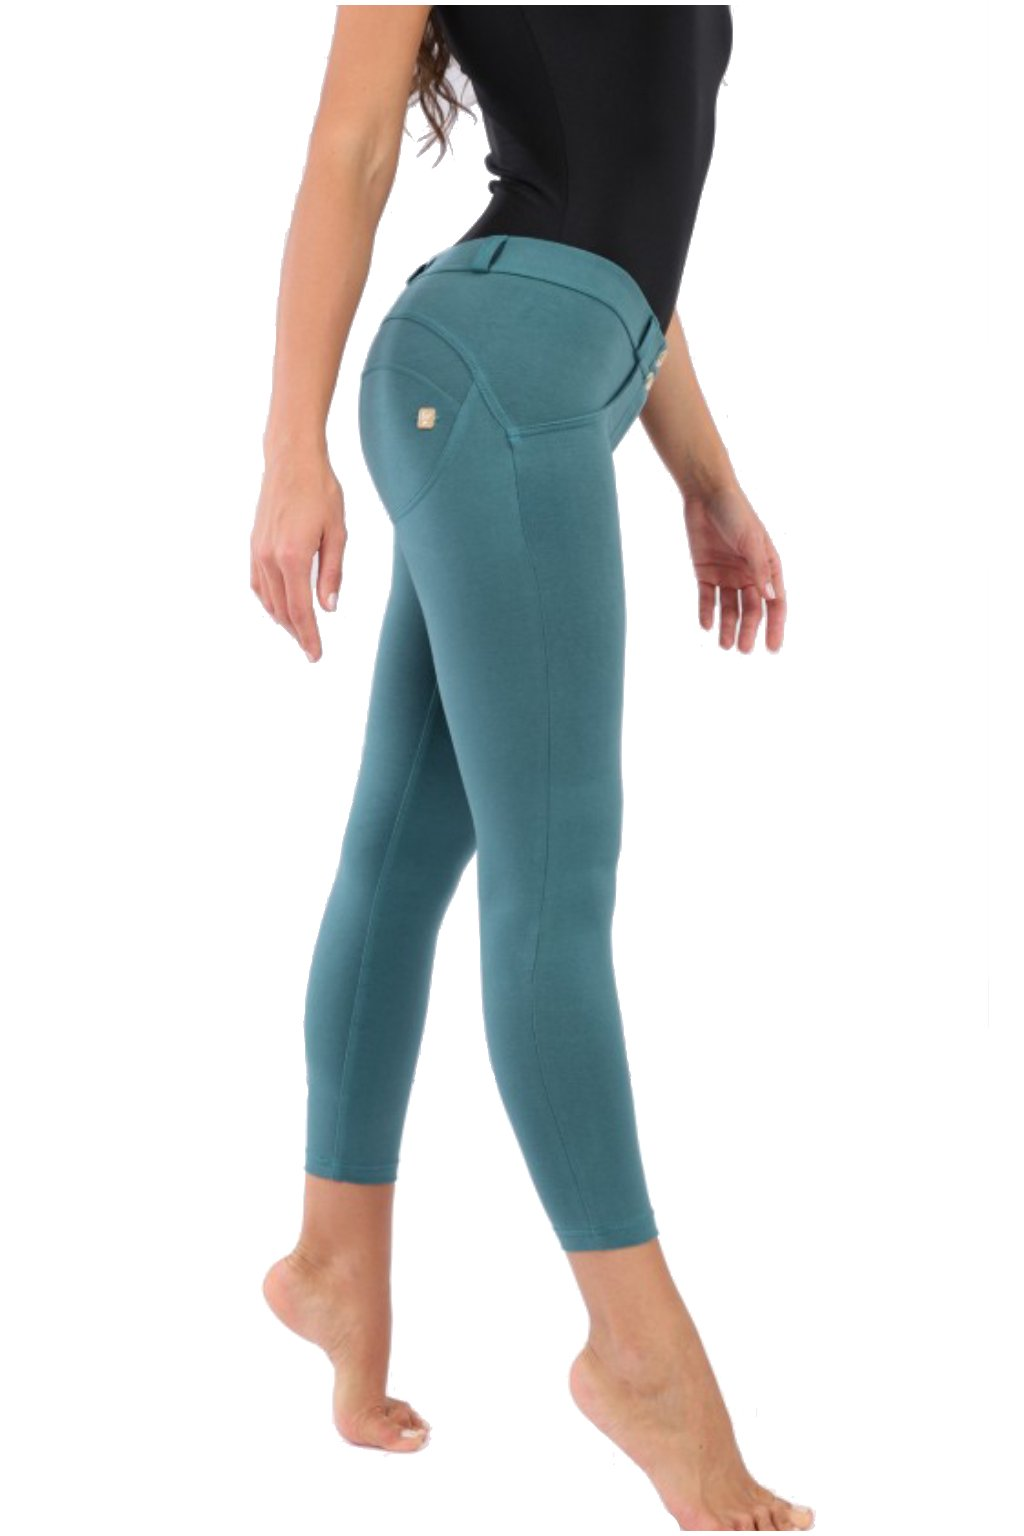 WRUP5RC001 Teal (5)